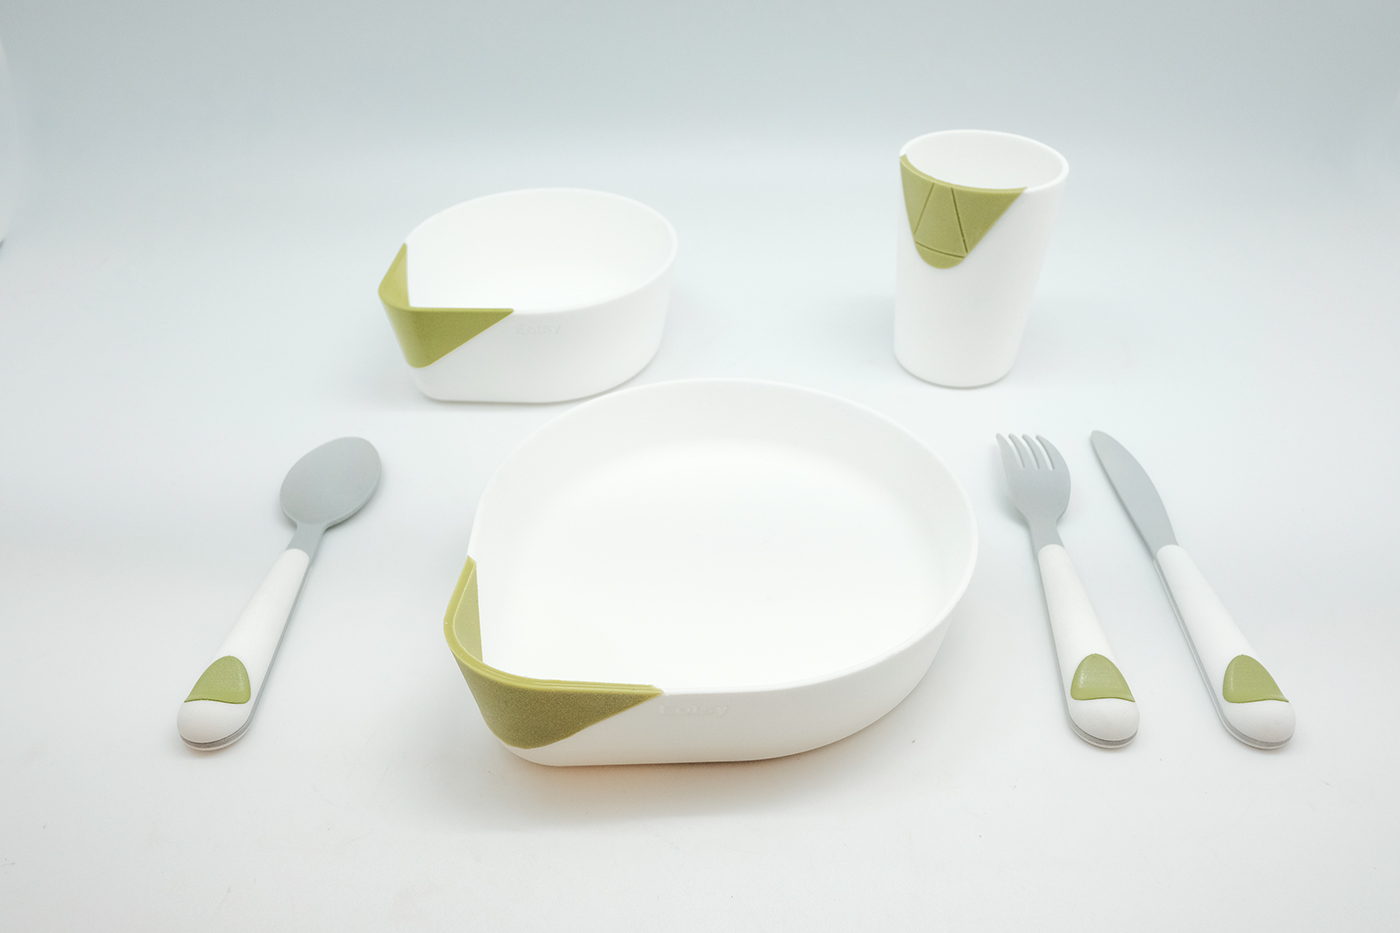 Eatsy is a set of multi-functional tableware consisting of a plate bowl cup and utensils. Each of them has a unique feature with subtle details that ... & EATSY - Adaptive Tableware for the Visually Impaired on Behance